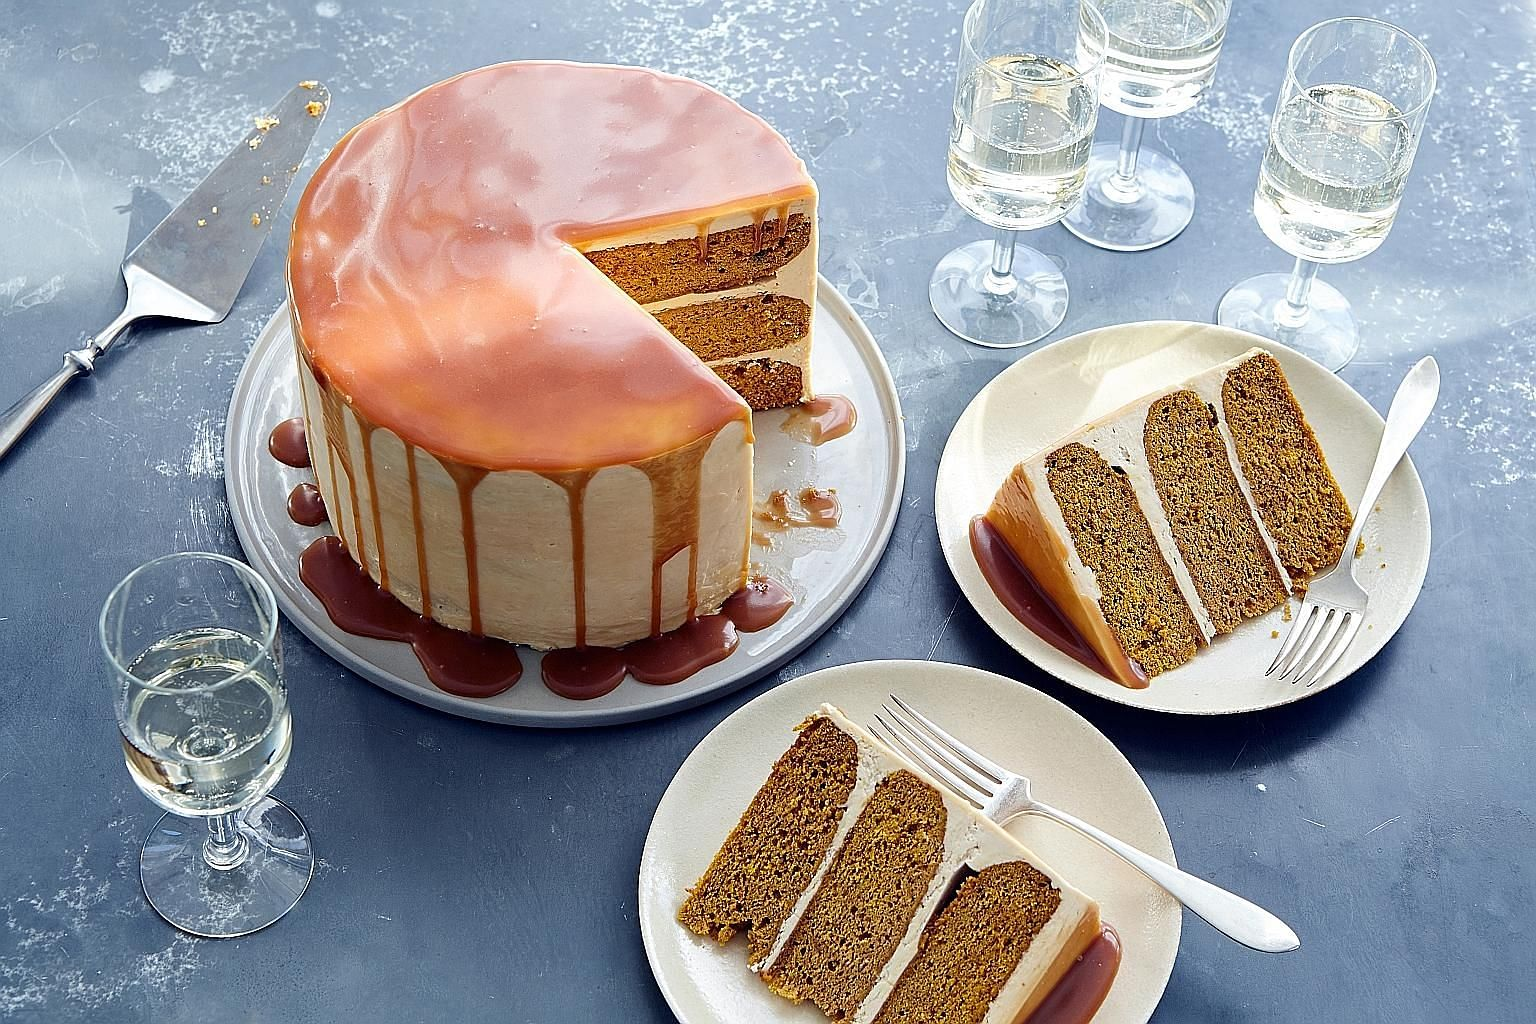 Bake layered pumpkin cake drizzled with caramel buttercream for Thanksgiving instead of the staple pumpkin pie.